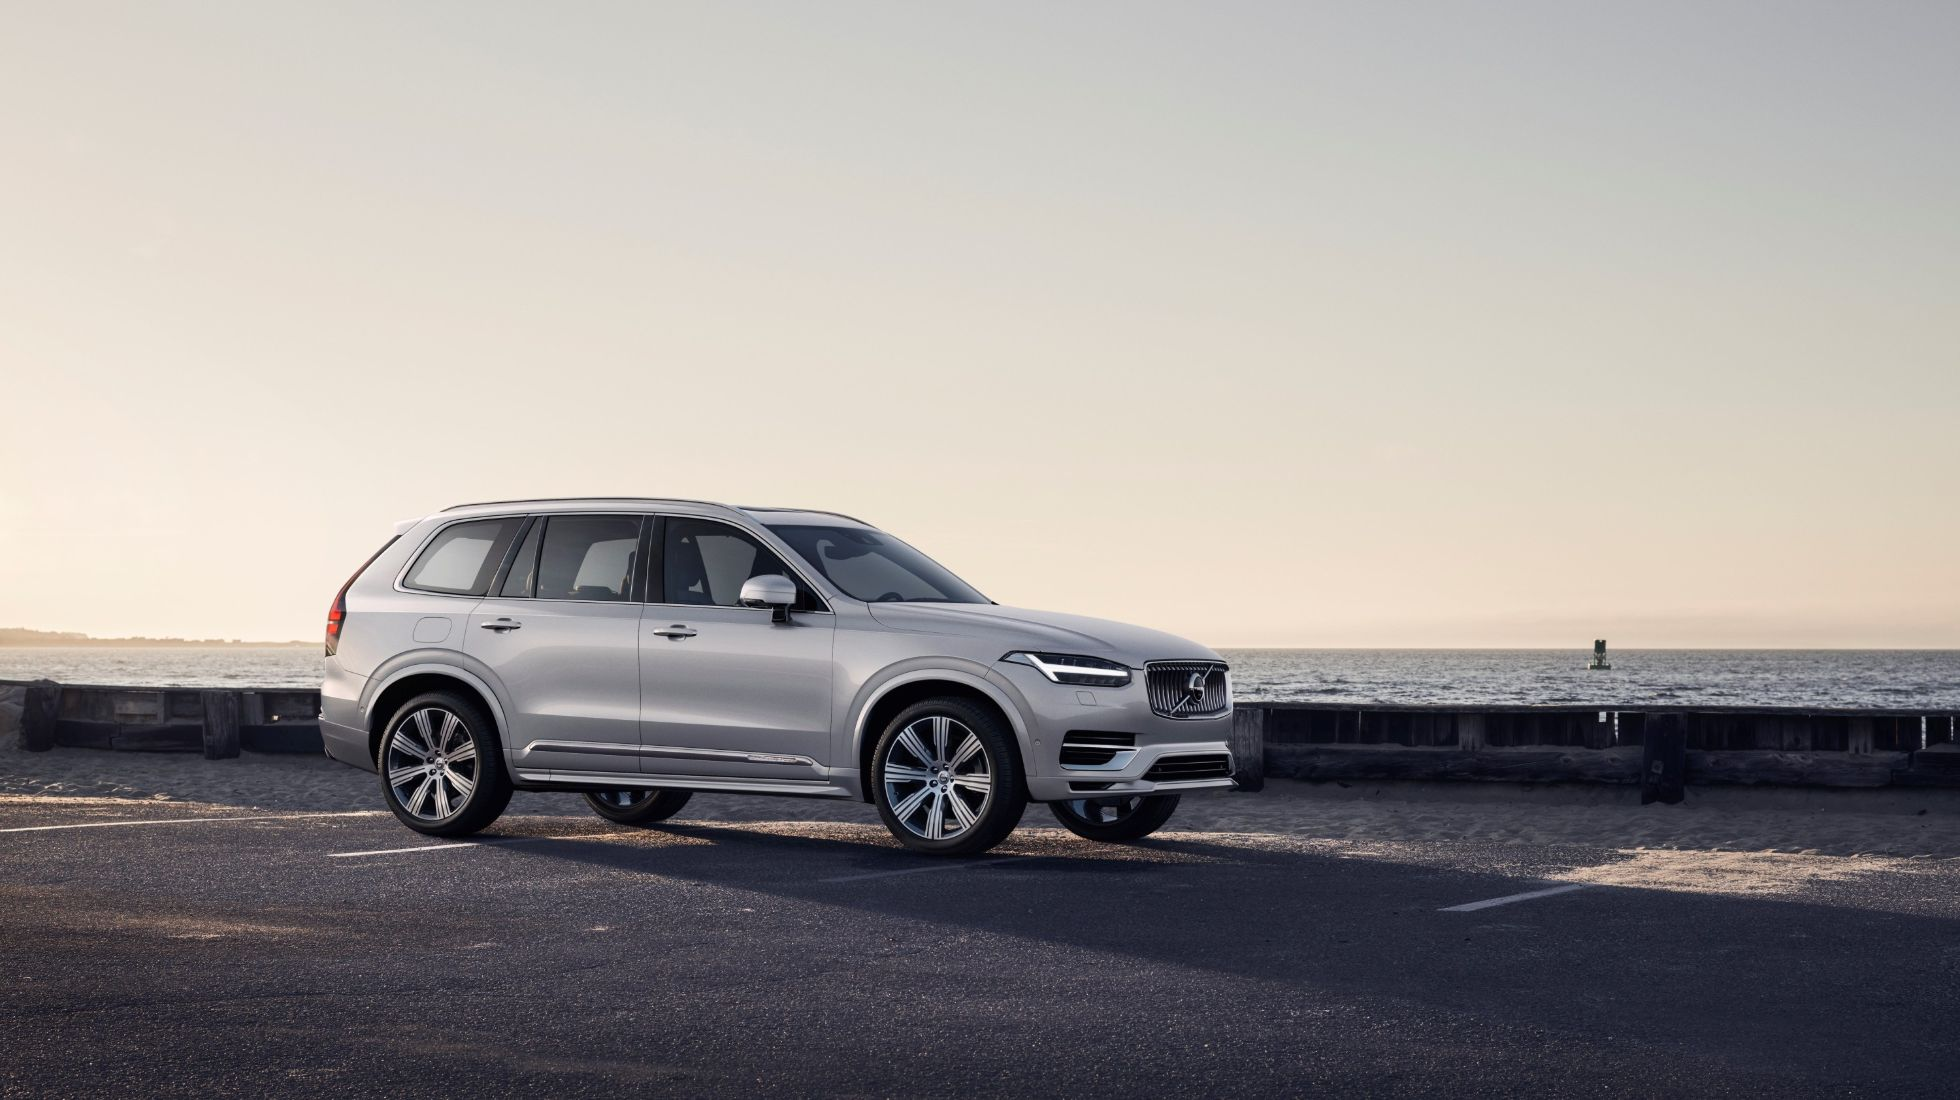 Review: Volvo XC90 T8 Recharge